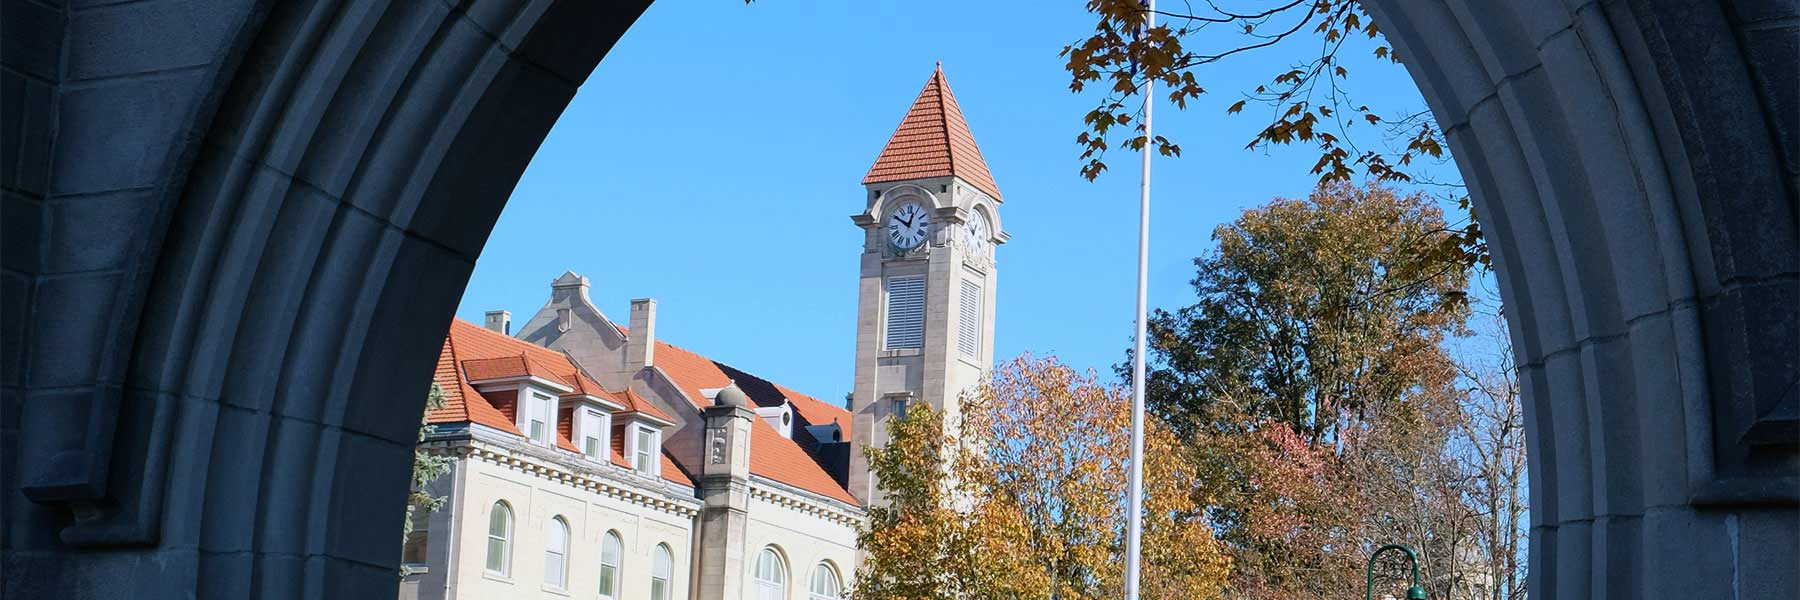 Student Building Clock Tower